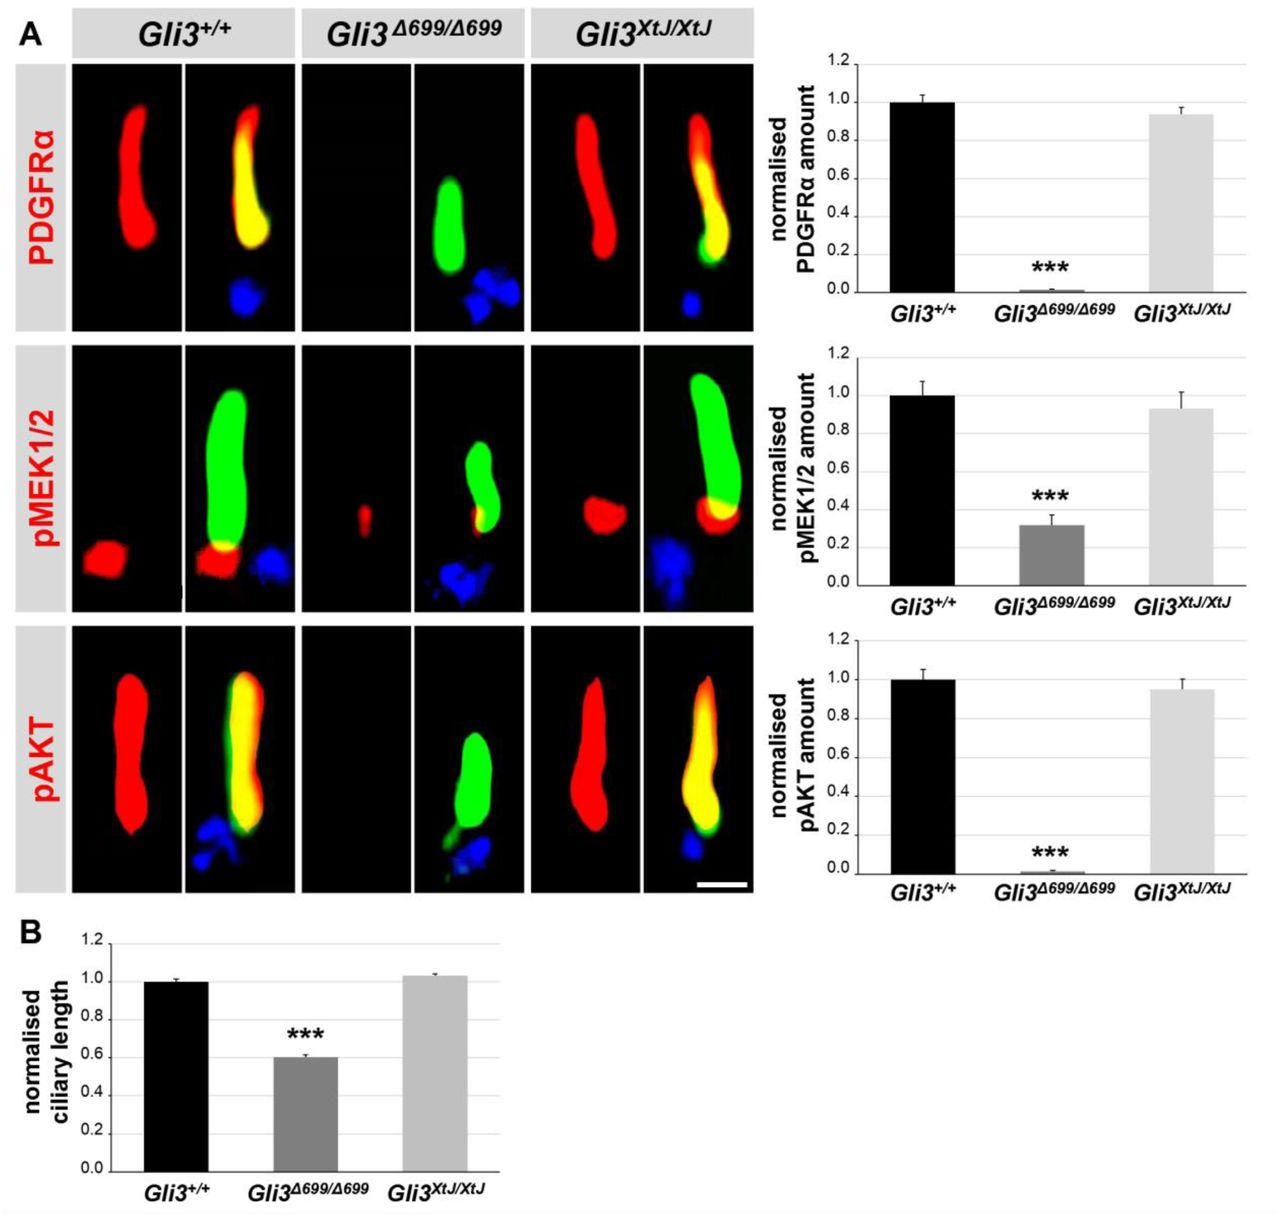 Reduced PDGFRα signalling and ciliary length in Gli3 Δ699/Δ699 hearts. (A) Immunofluorescence on heart sections obtained from WT (n=12), Gli3 Δ699/Δ699 (n=8) and Gli3 XtJ/XtJ (n=12) embryos at E12.5. The ciliary axoneme is stained in green by acetylated α-tubulin, the basal body is stained in blue by γ-tubulin. The scale bar represents a length of 0.5 µm. (B) Ciliary length measurement on mouse embryonic heart sections obtained from WT, Gli3 Δ699/Δ699 and Gli3 XtJ/XtJ (n = 4, respectively) embryos at E12.5.